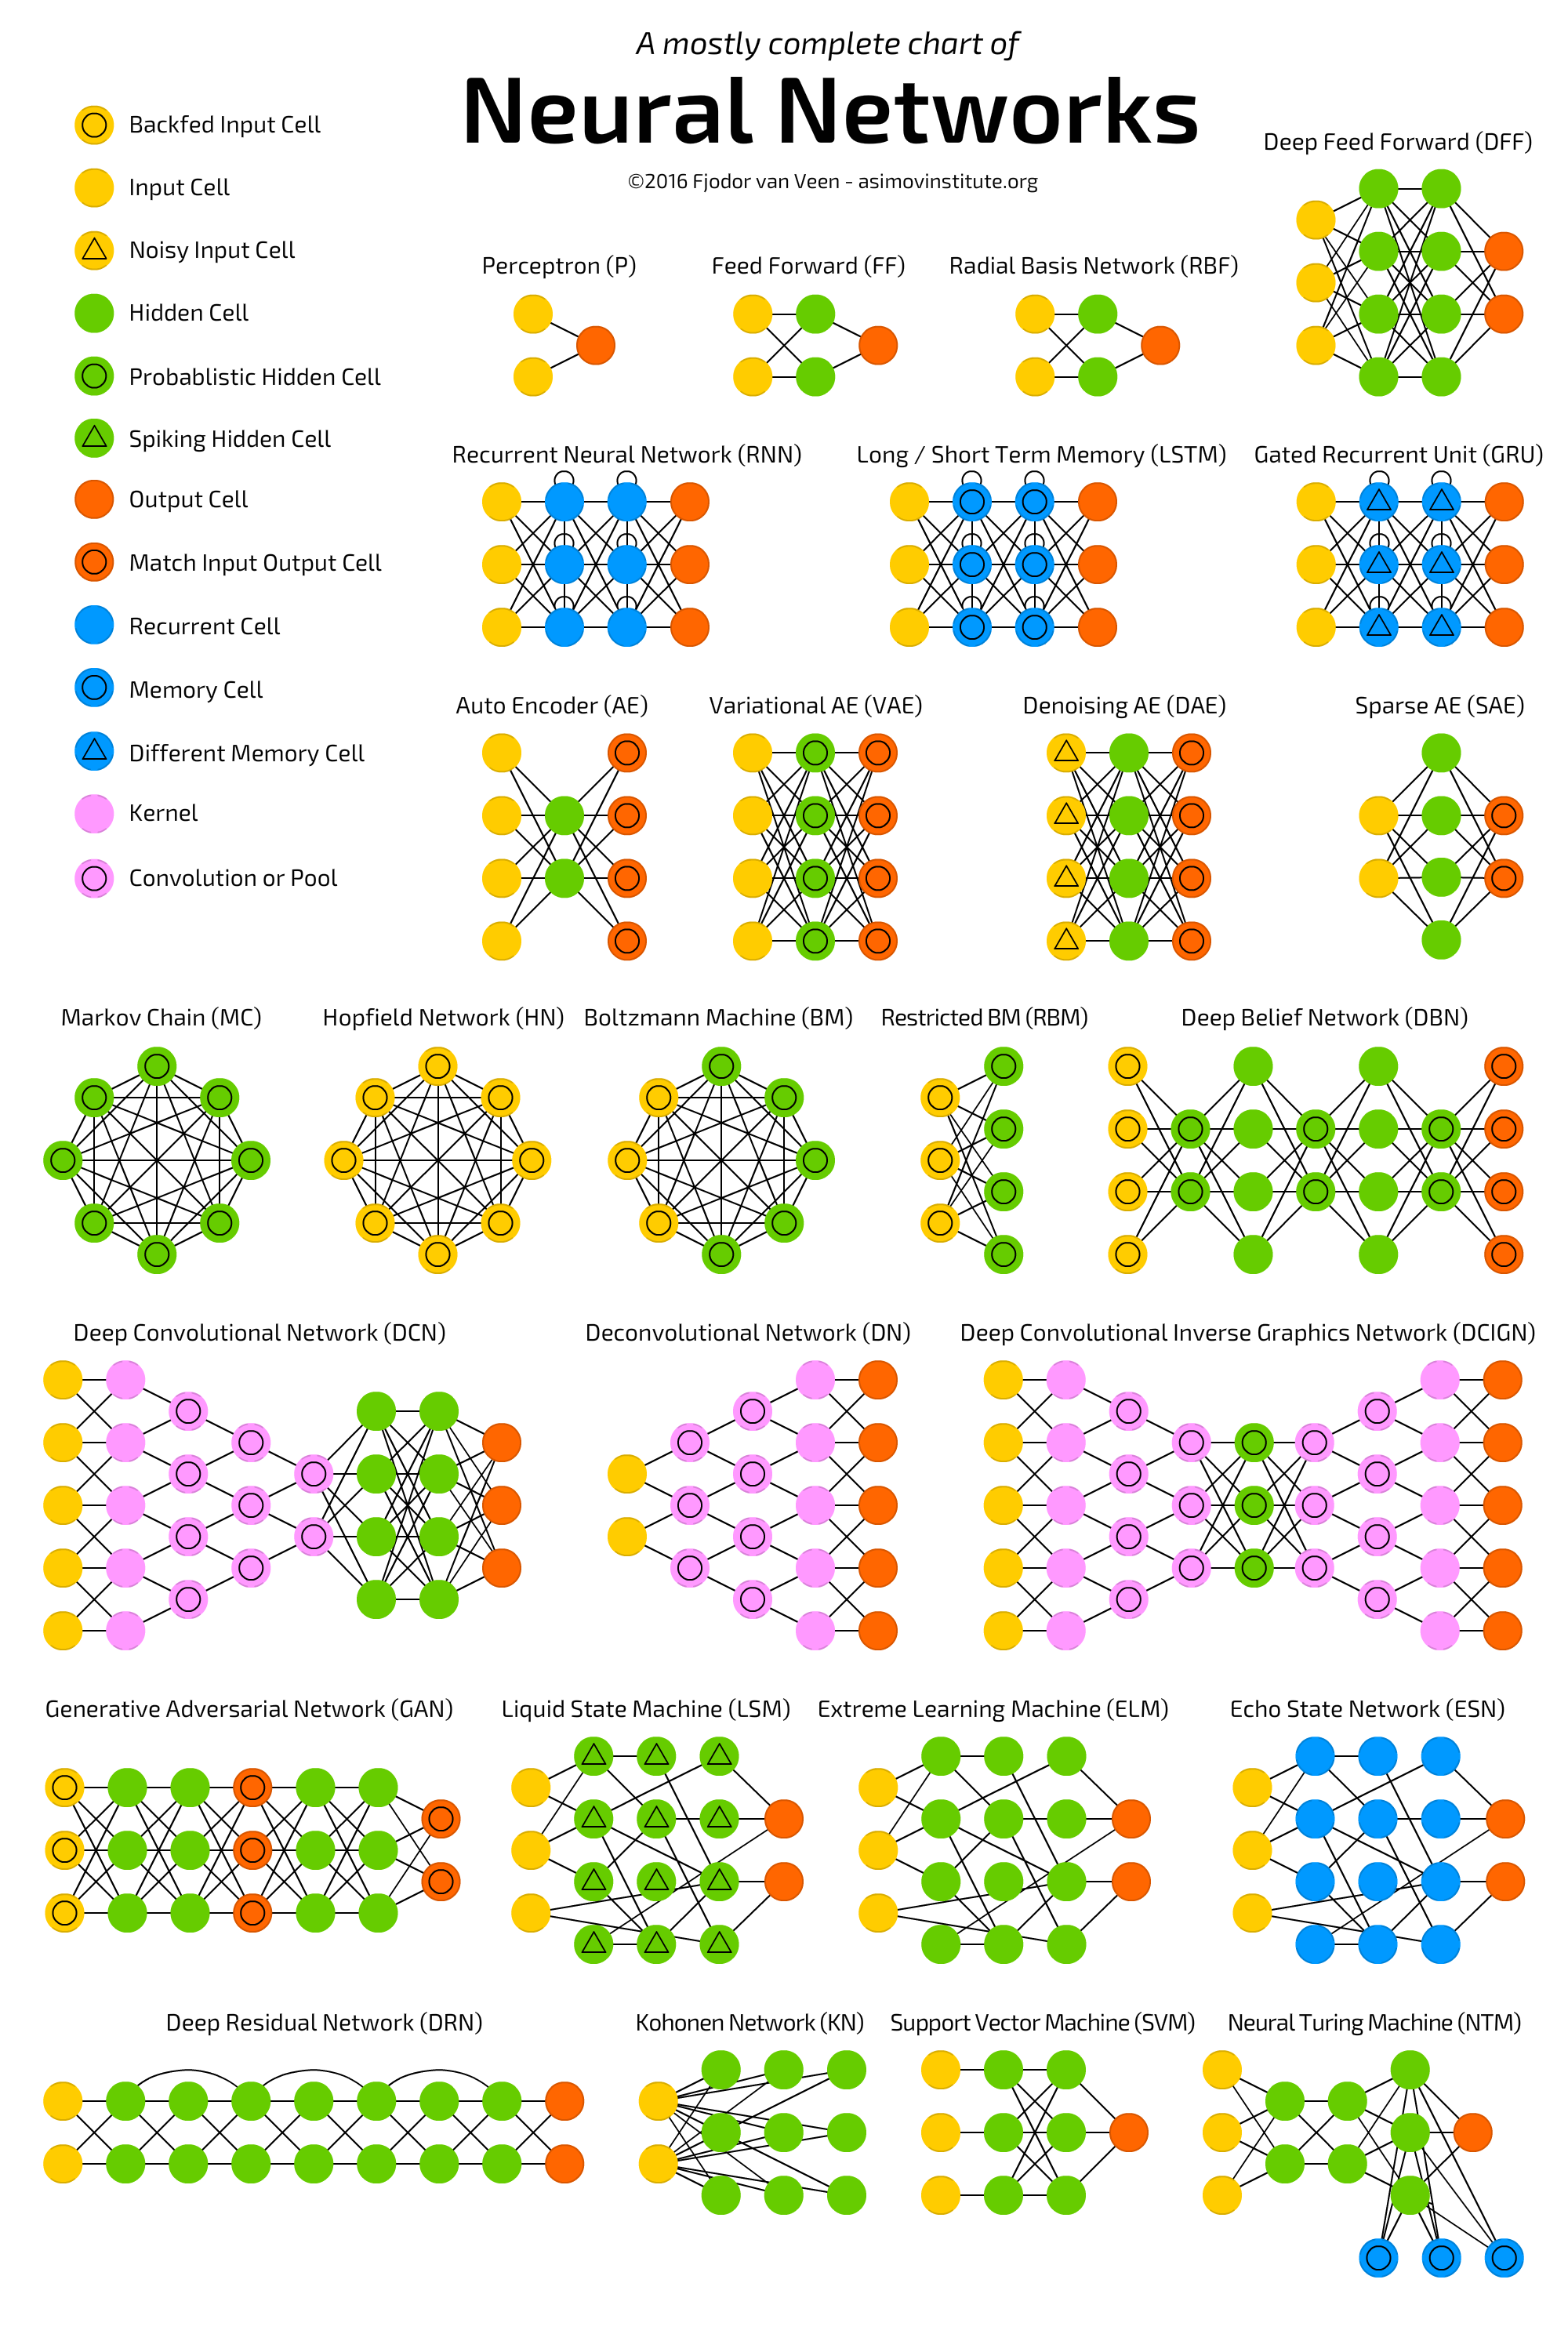 Overview of the most popular neural networks